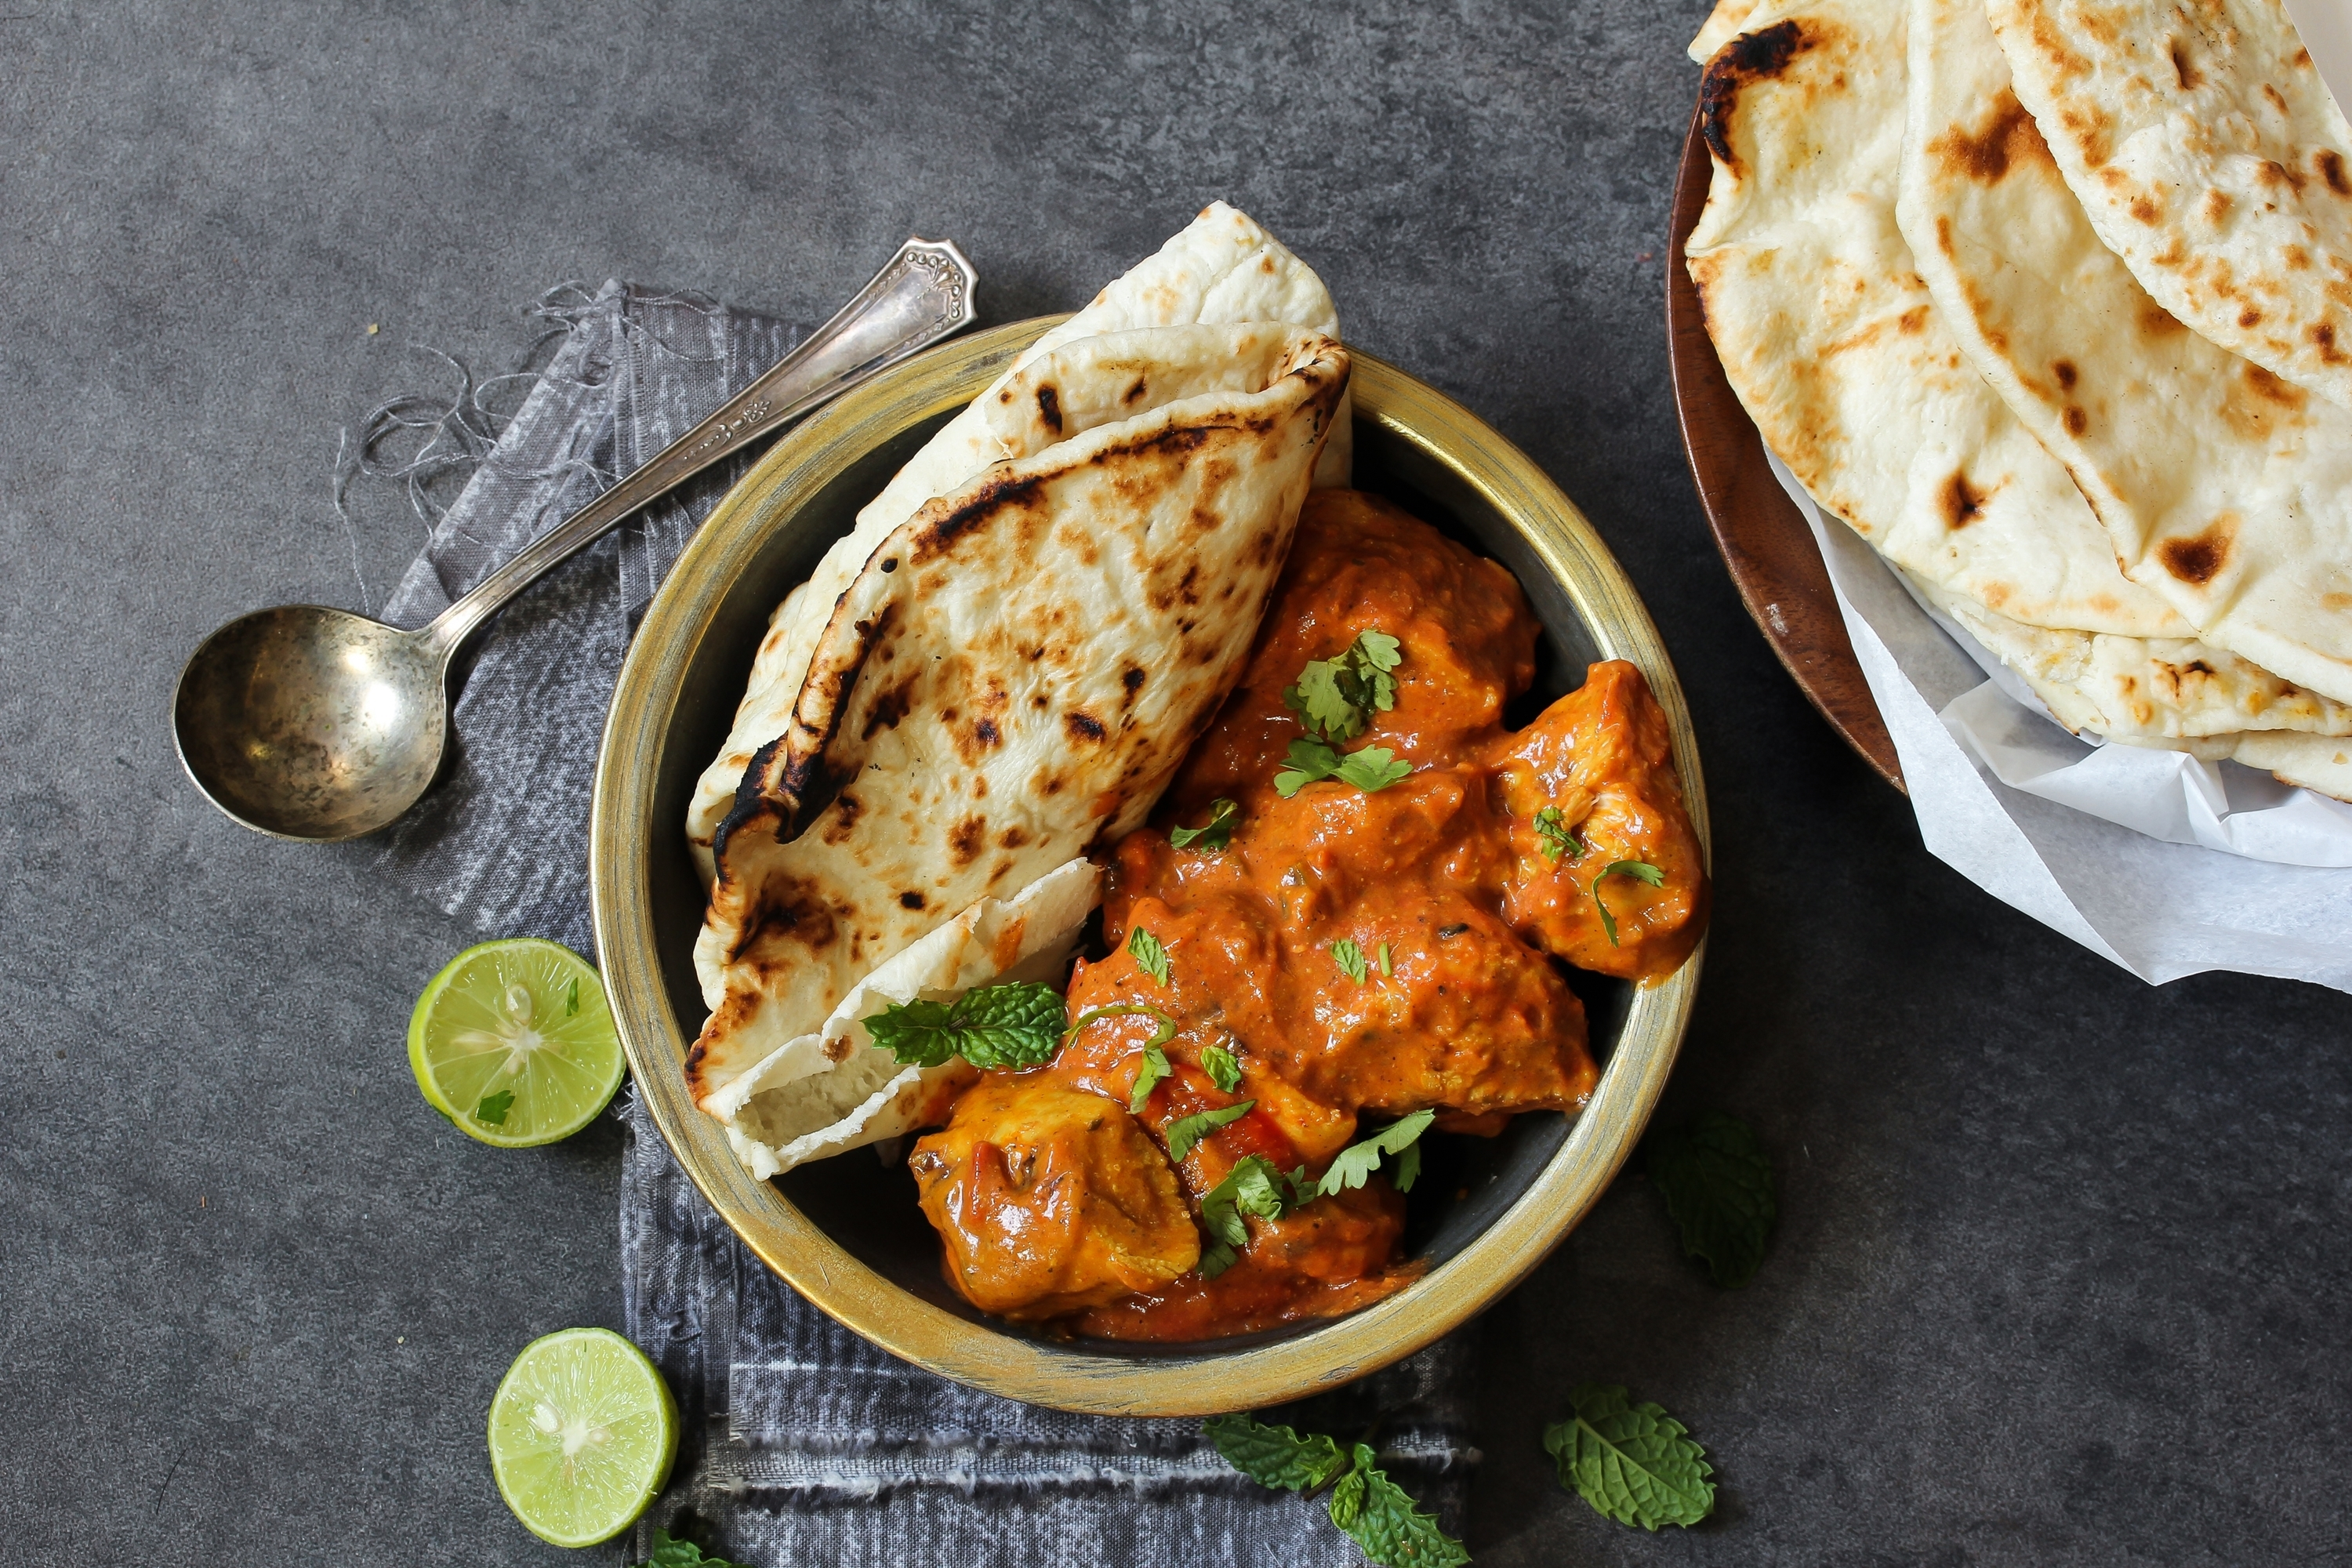 New Indian Restaurant Brings Sweeping Menu to the West Bank